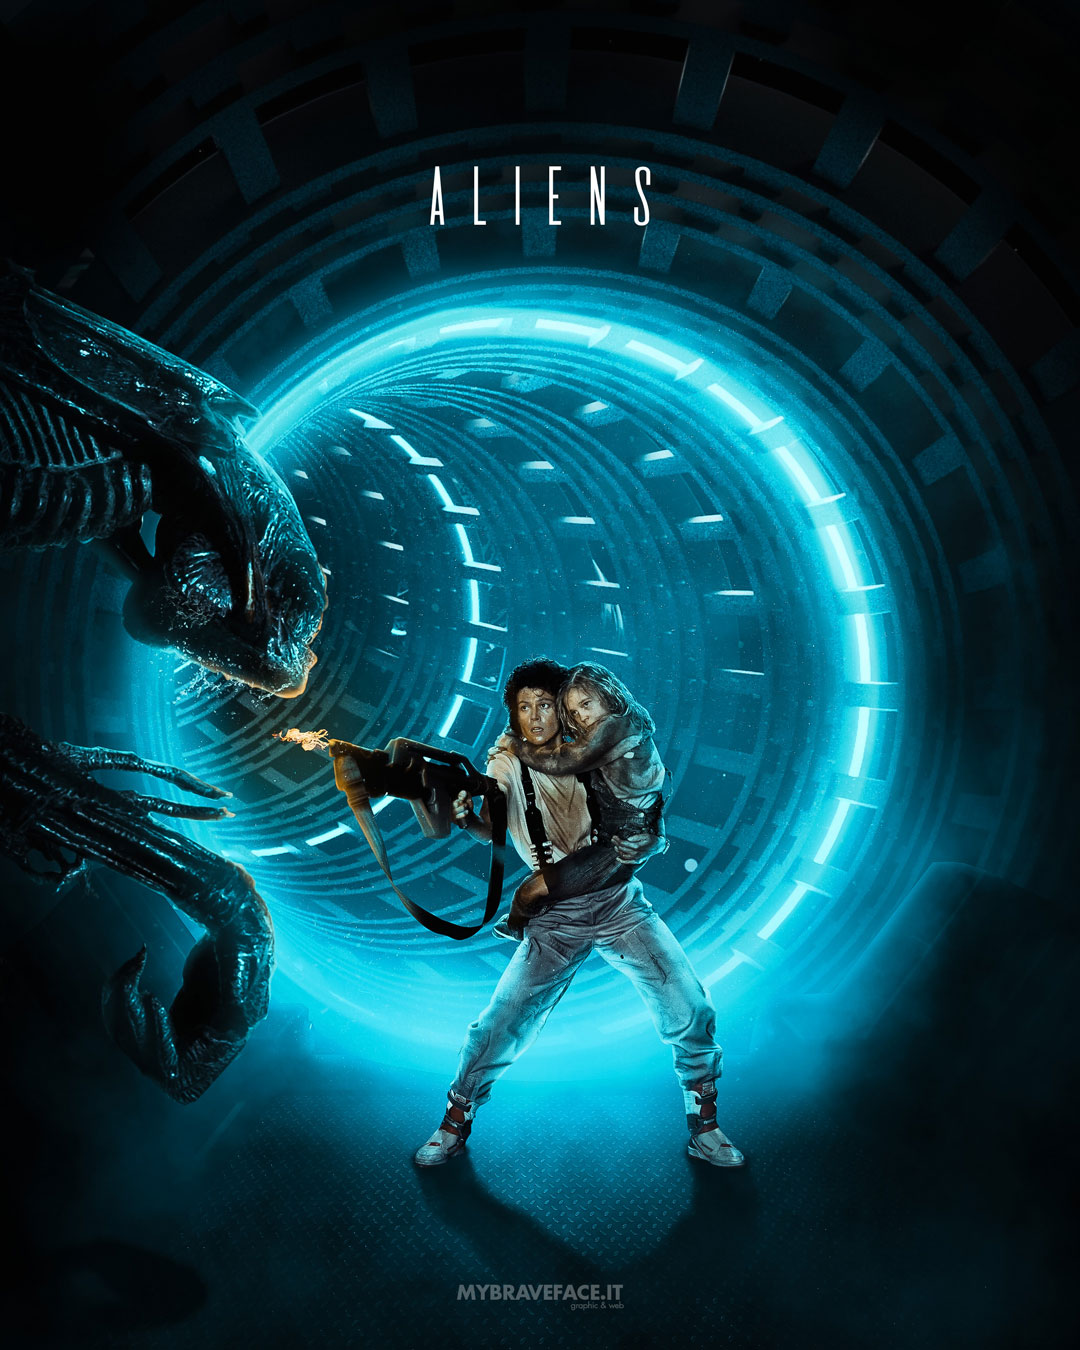 Aliens - photomanipulation